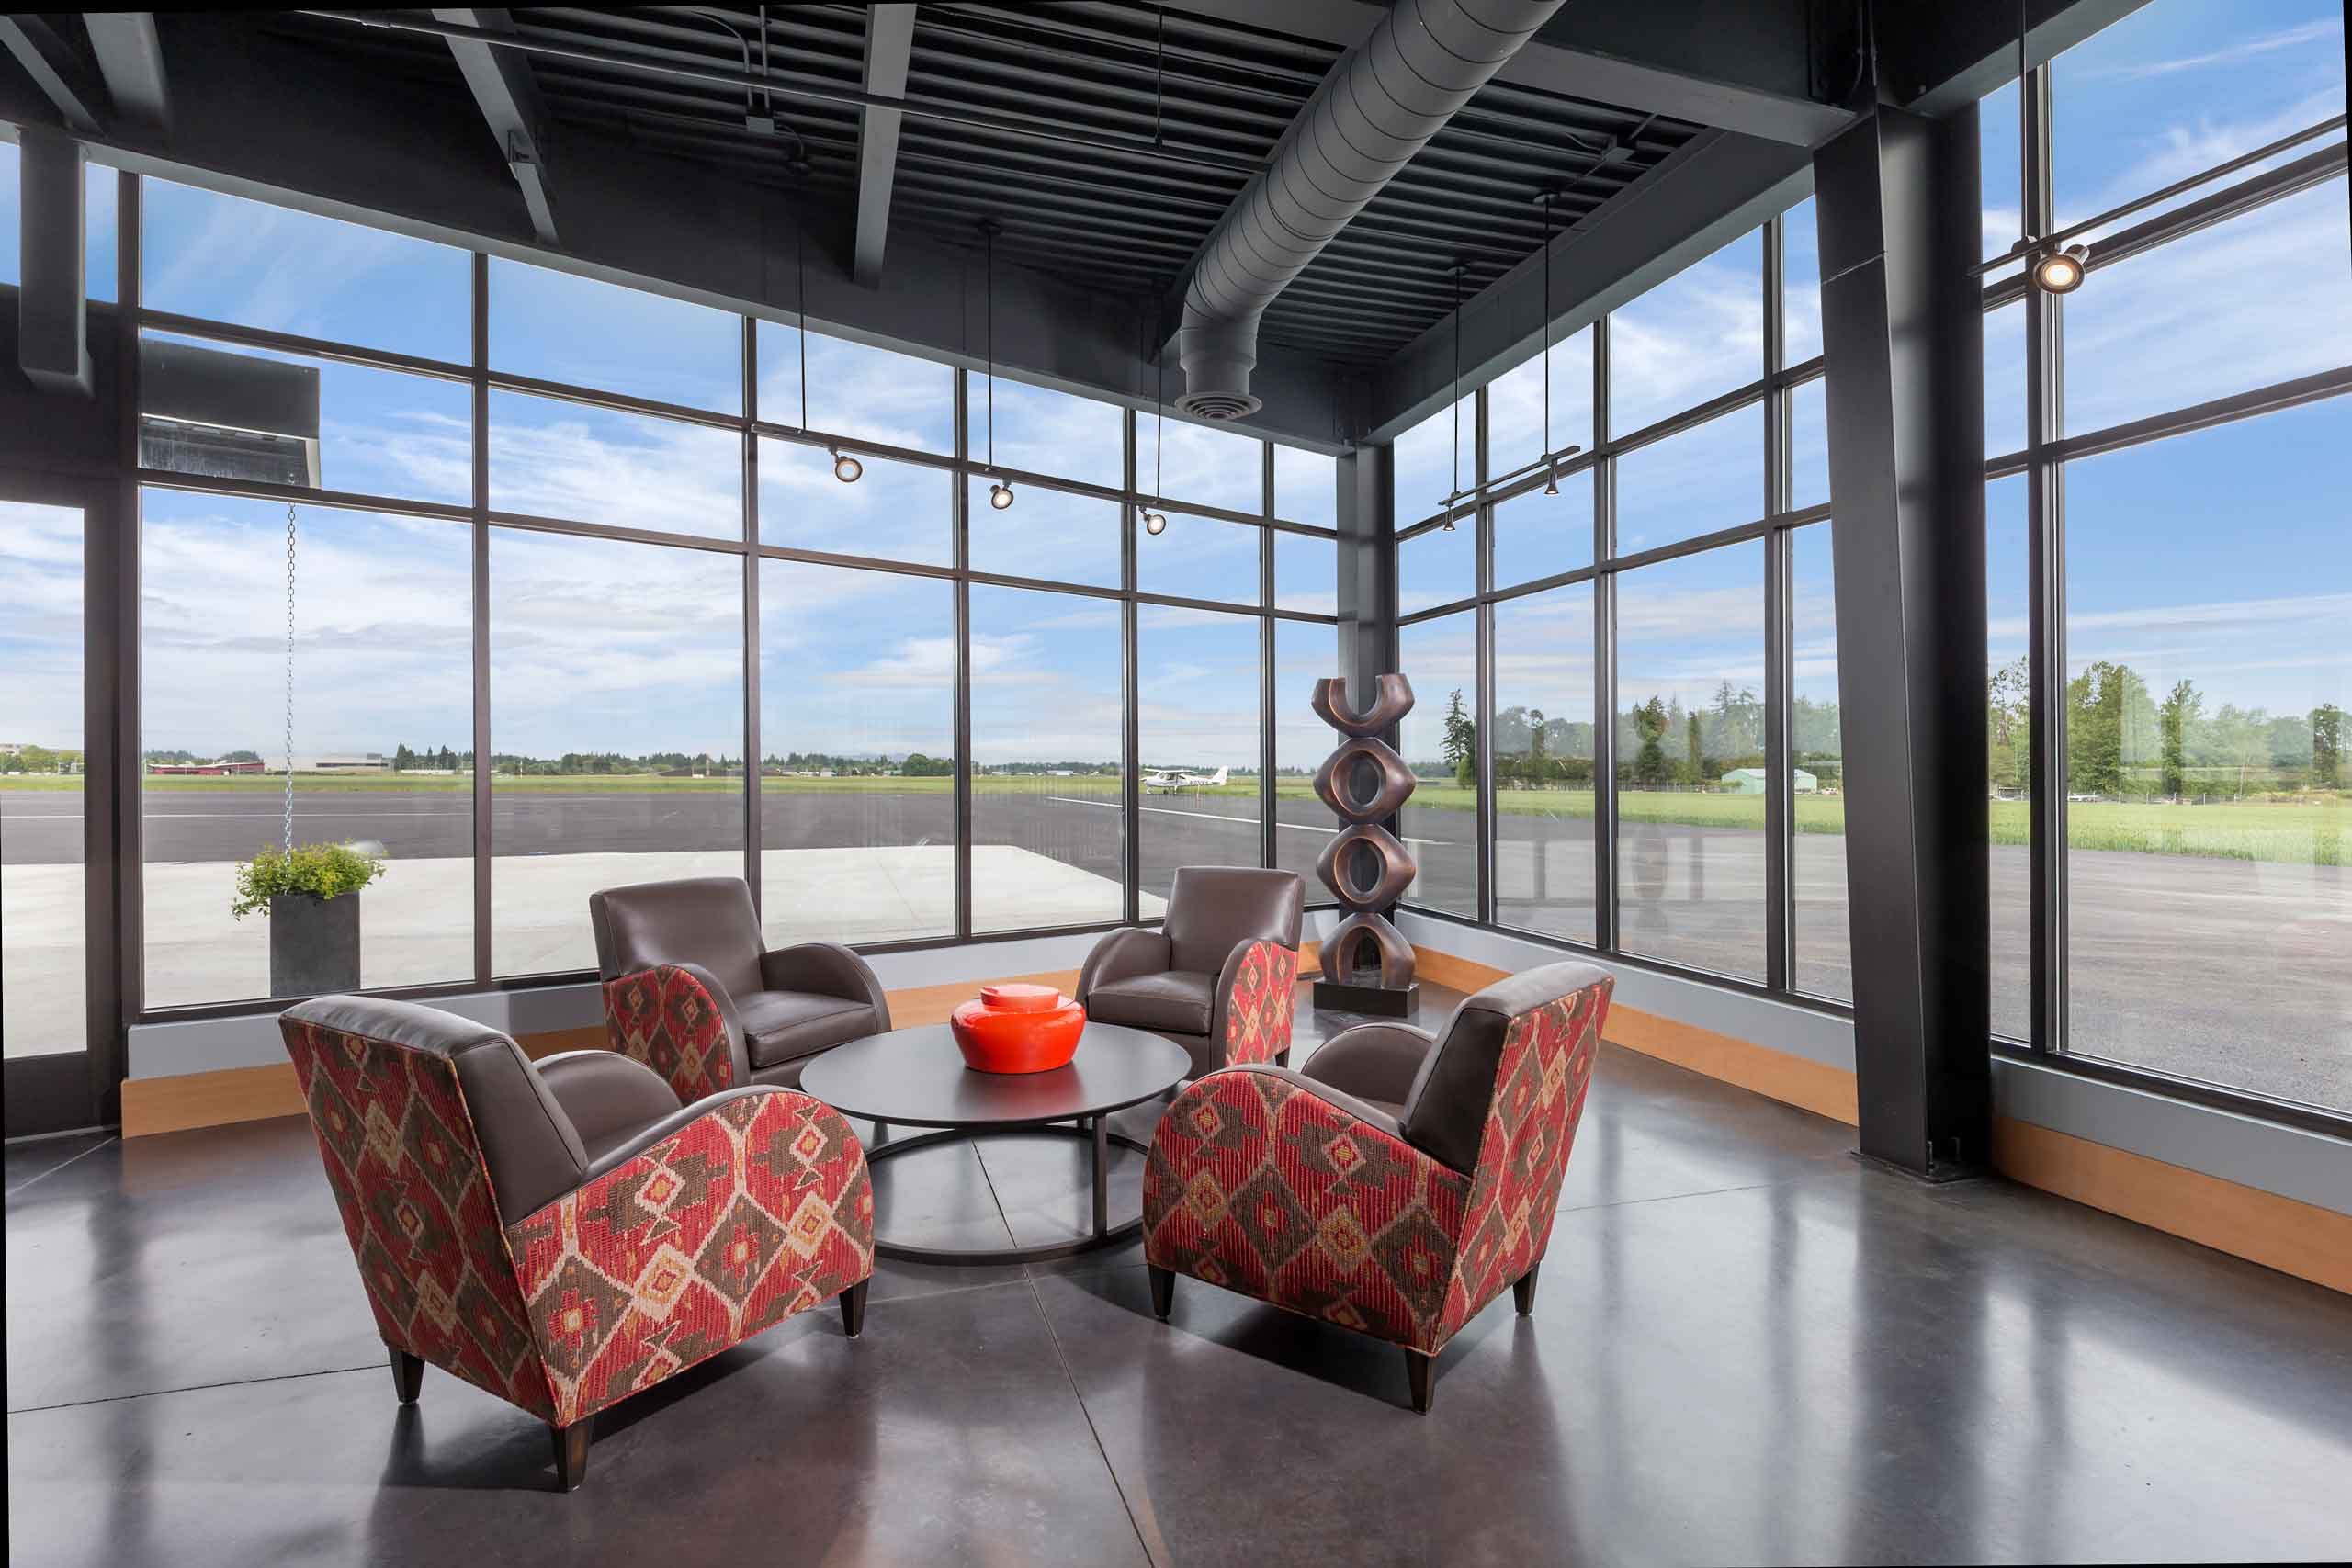 seating area with windows hillsboro aviation fbo